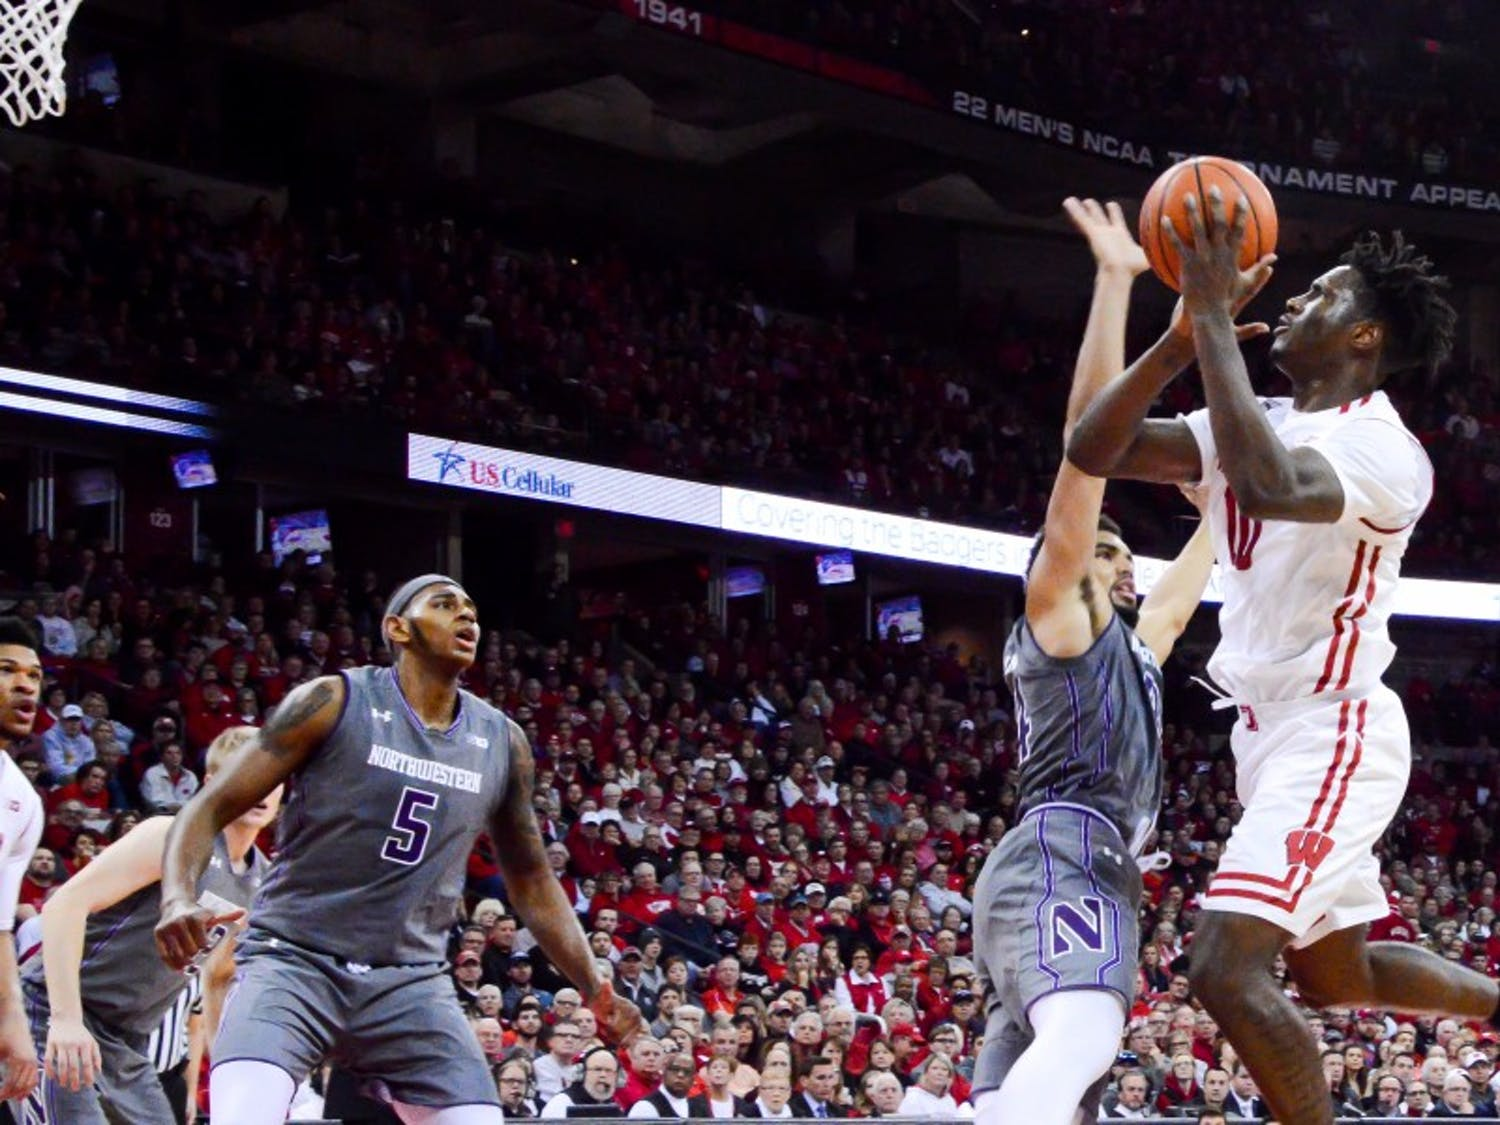 Nigel Hayes' 13 points weren't enough as the Badgers fell to the Wildcats at the Kohl Center.